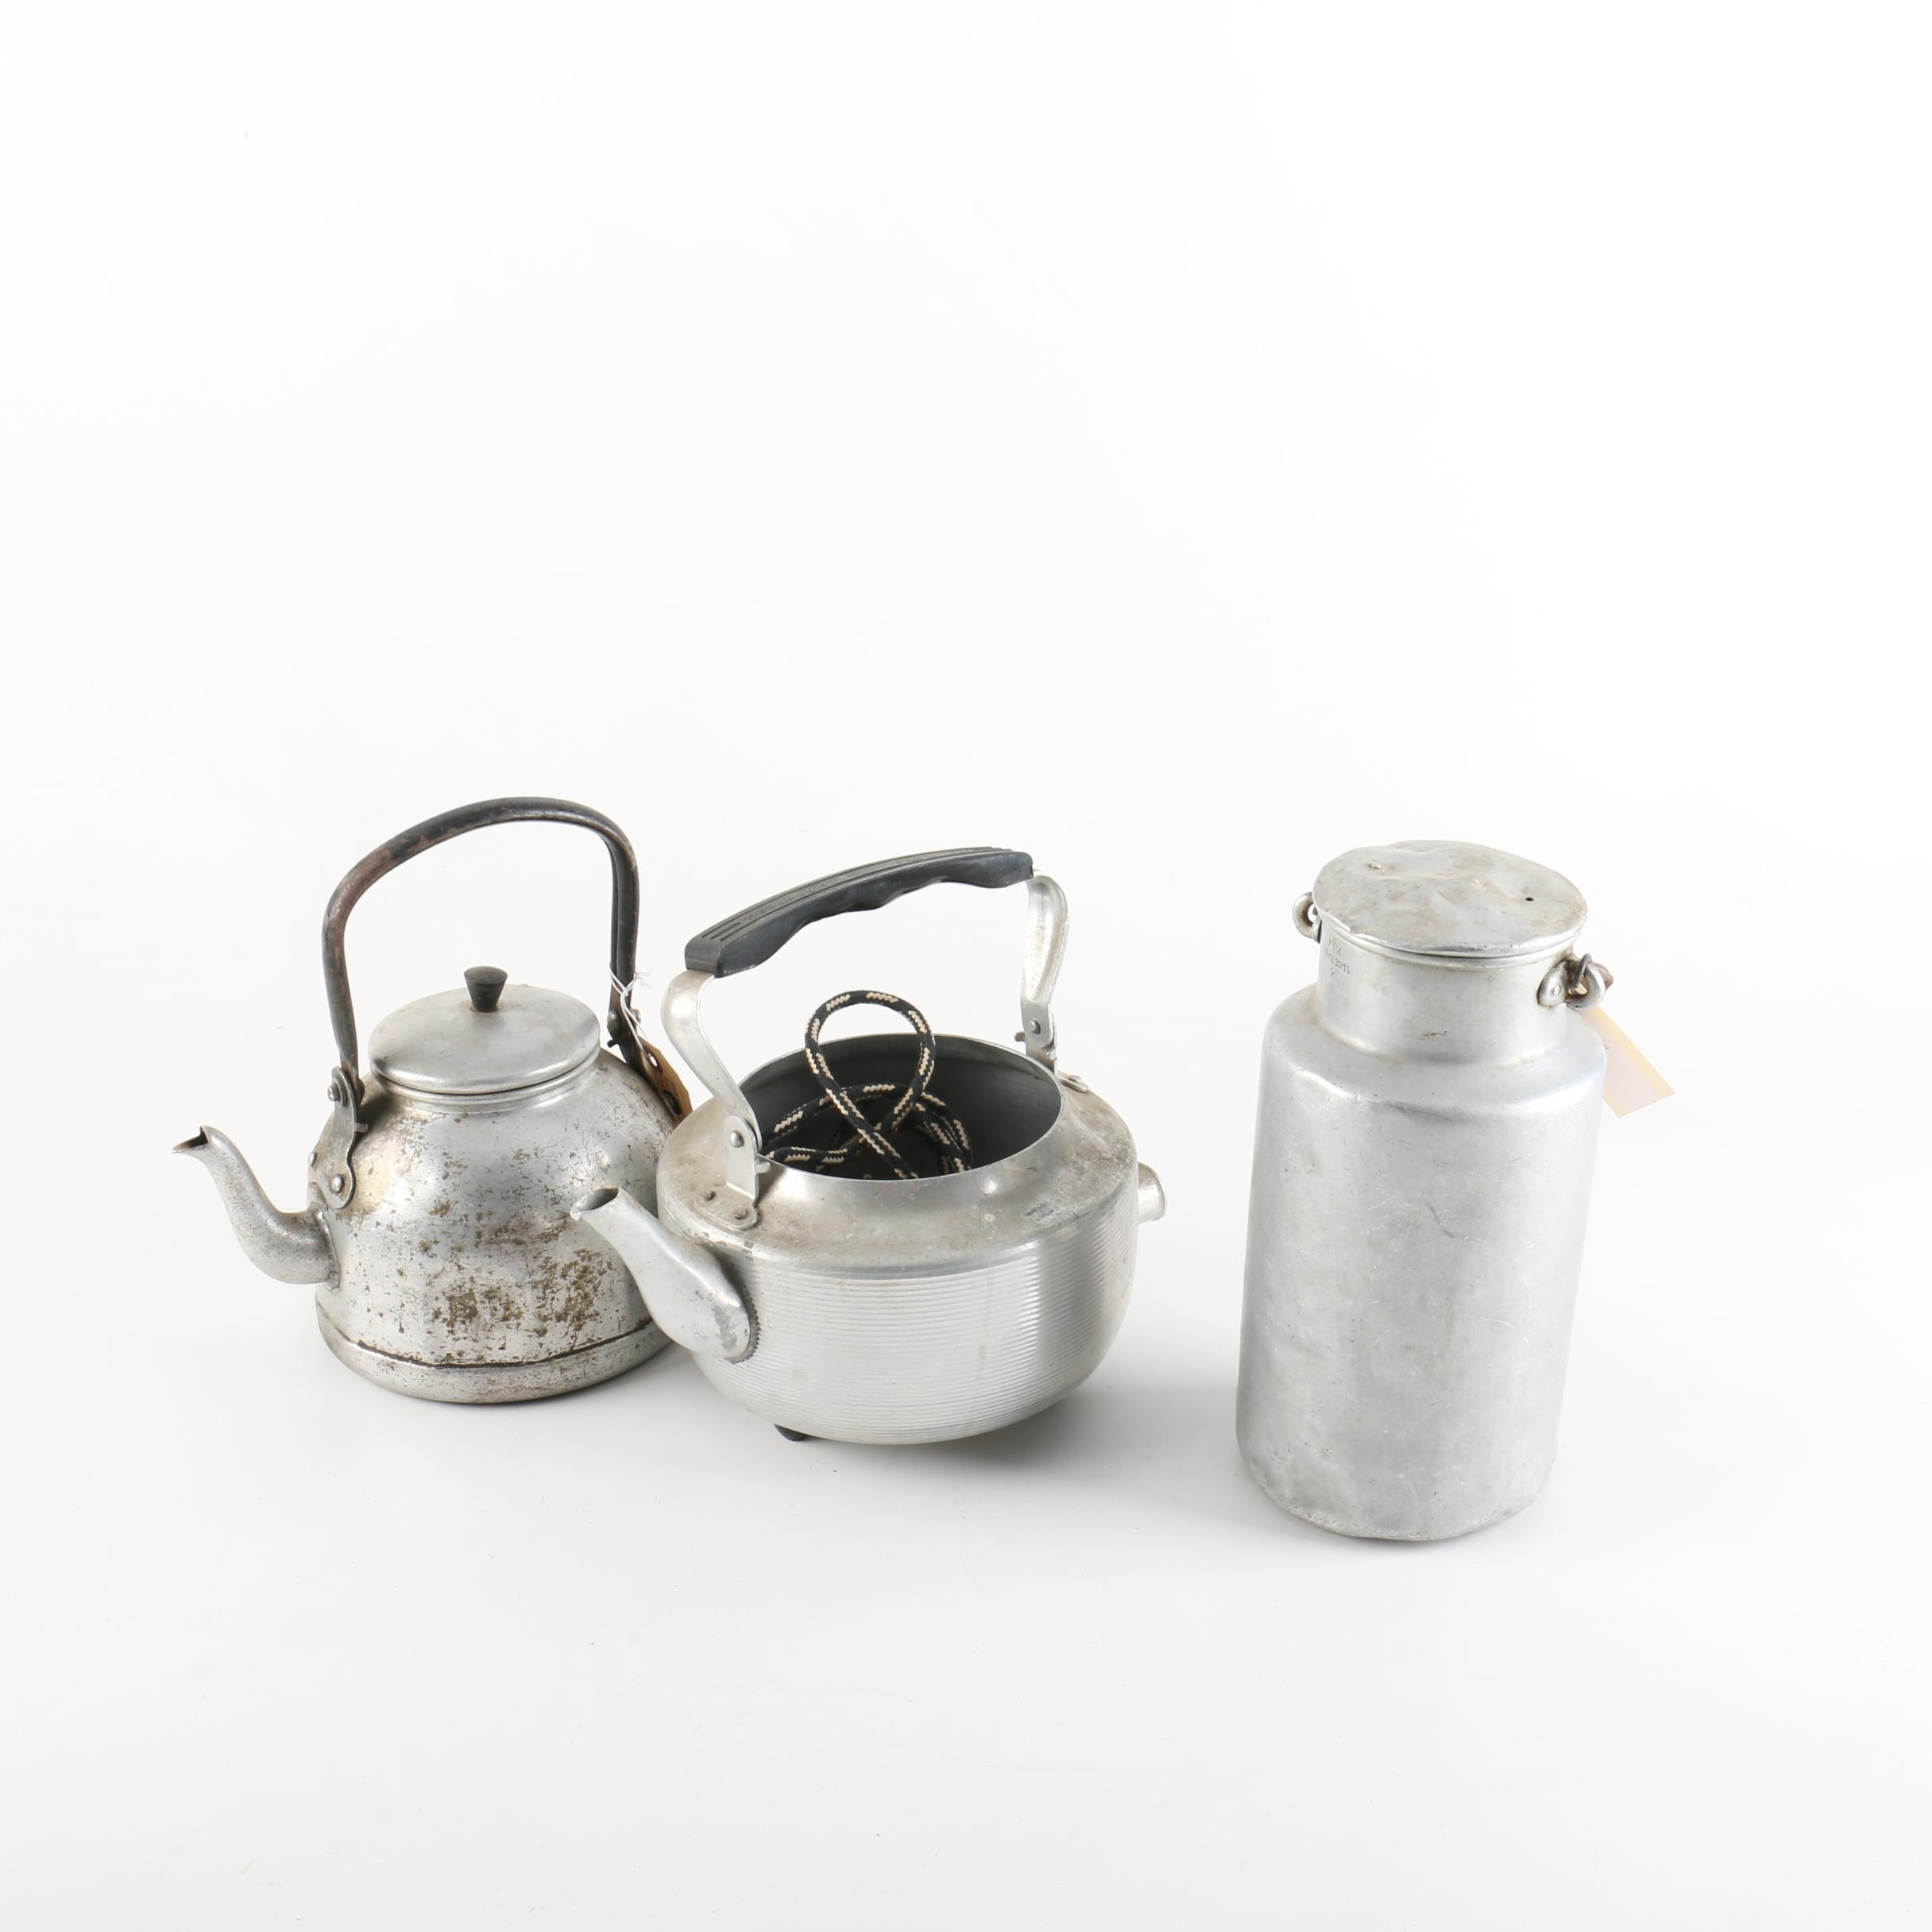 Metal Tea Kettle and Coffee Pot with Jar